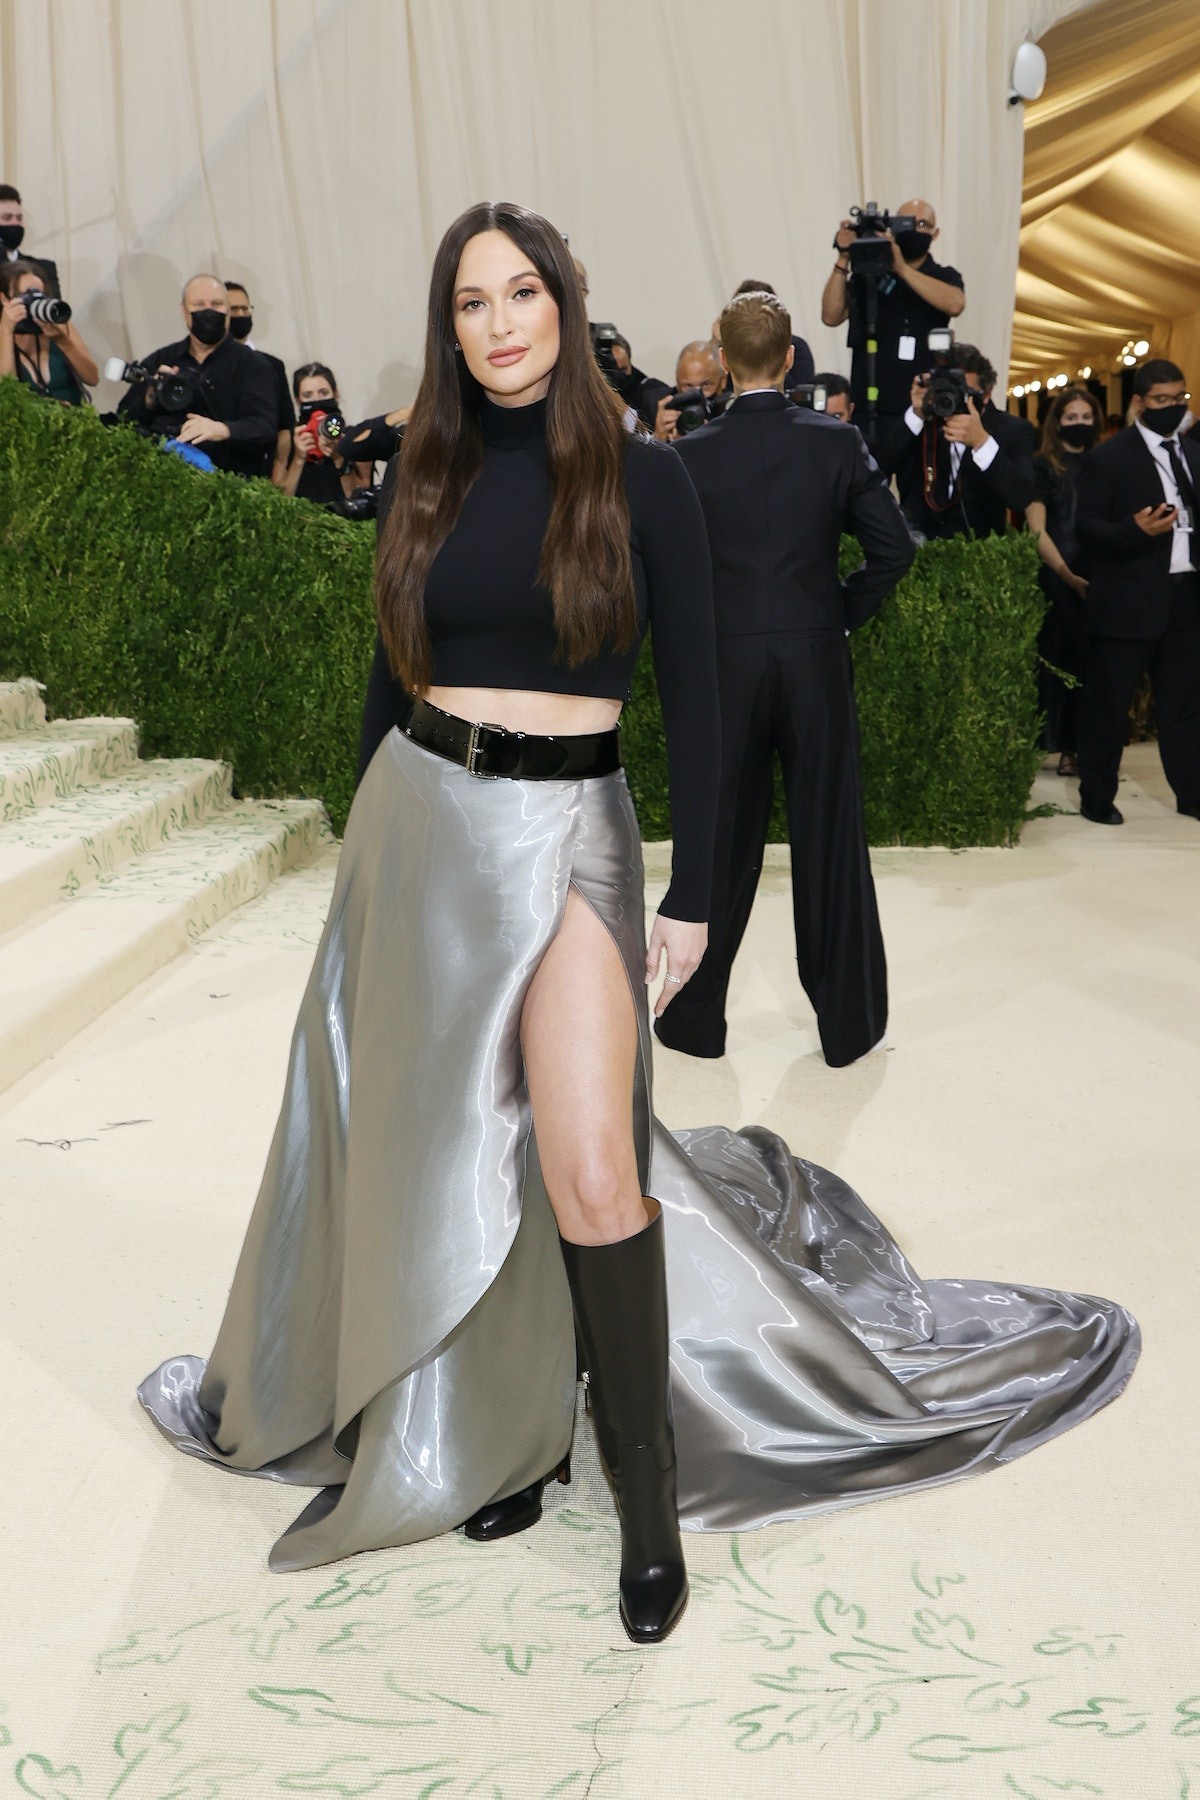 Kacey Musgraves attends The 2021 Met Gala Celebrating In America: A Lexicon Of Fashion at Metropoli...